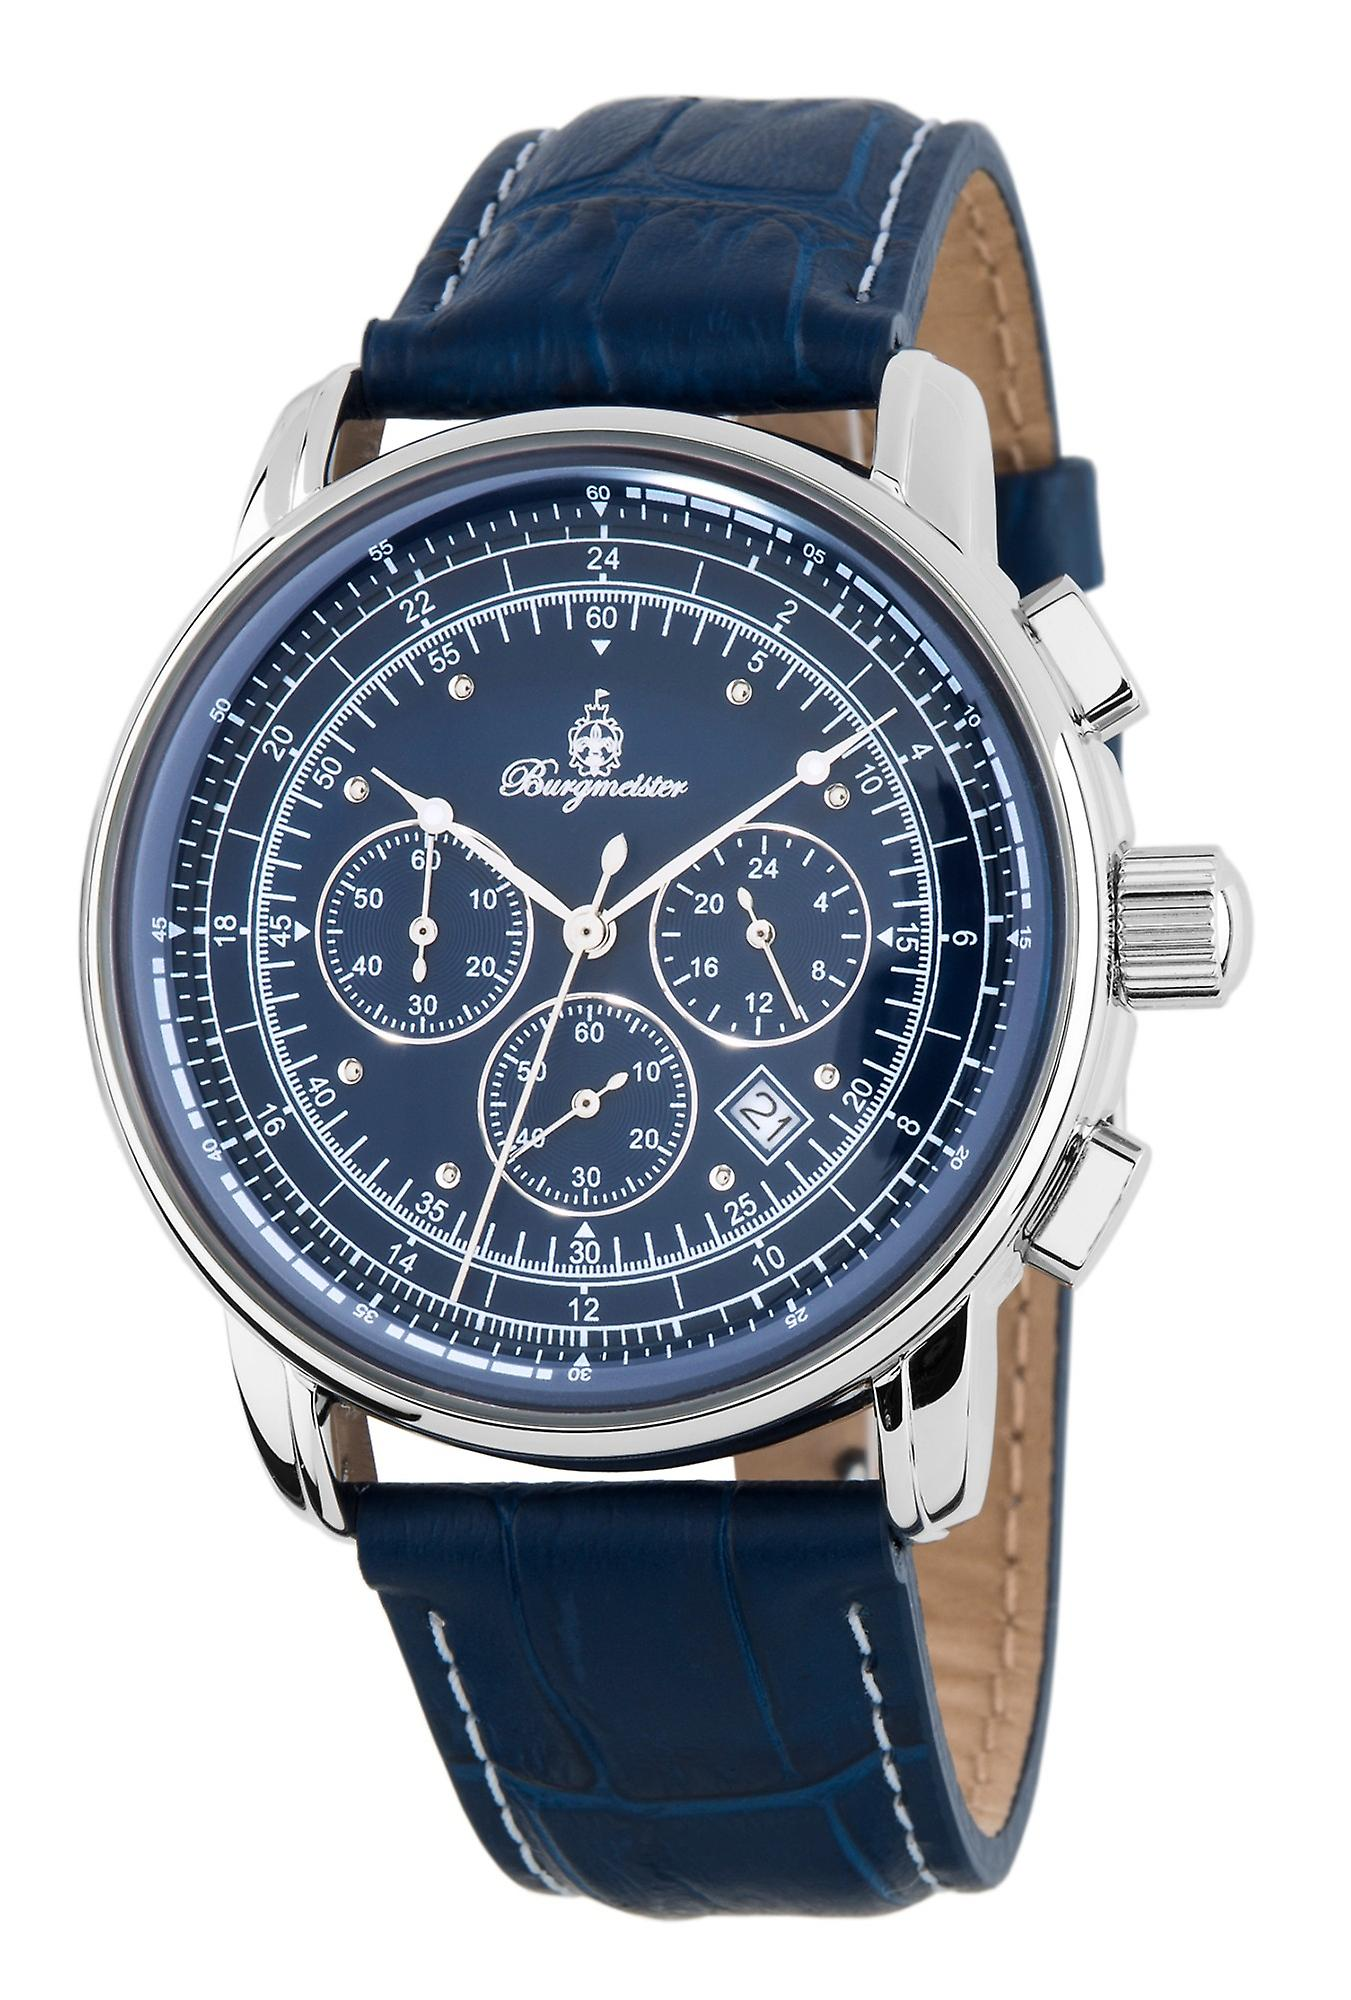 Burgmeister BM332-133 Tessin, Gents watch, Analogue display, Chronograph with Citizen Movement - Water resistant, Stylish leather strap, Classic men's watch